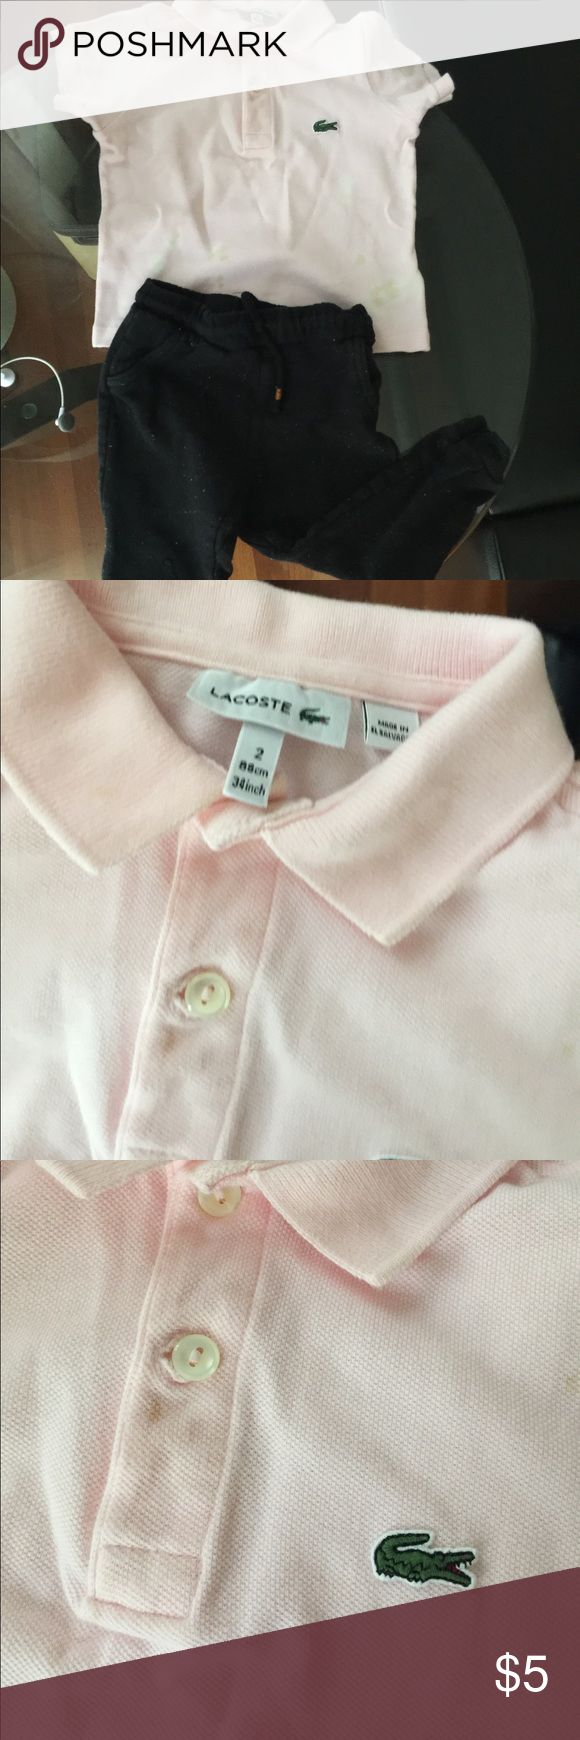 Moving sales!Toddler Lacoste polo shirt&Zara pants Kids Size 2 ,88cm 34 inch Lacoste polo shirt in light pink . Stains on the front. Zara black pants kids size 2/3years in good condition Lacoste Shirts & Tops Polos